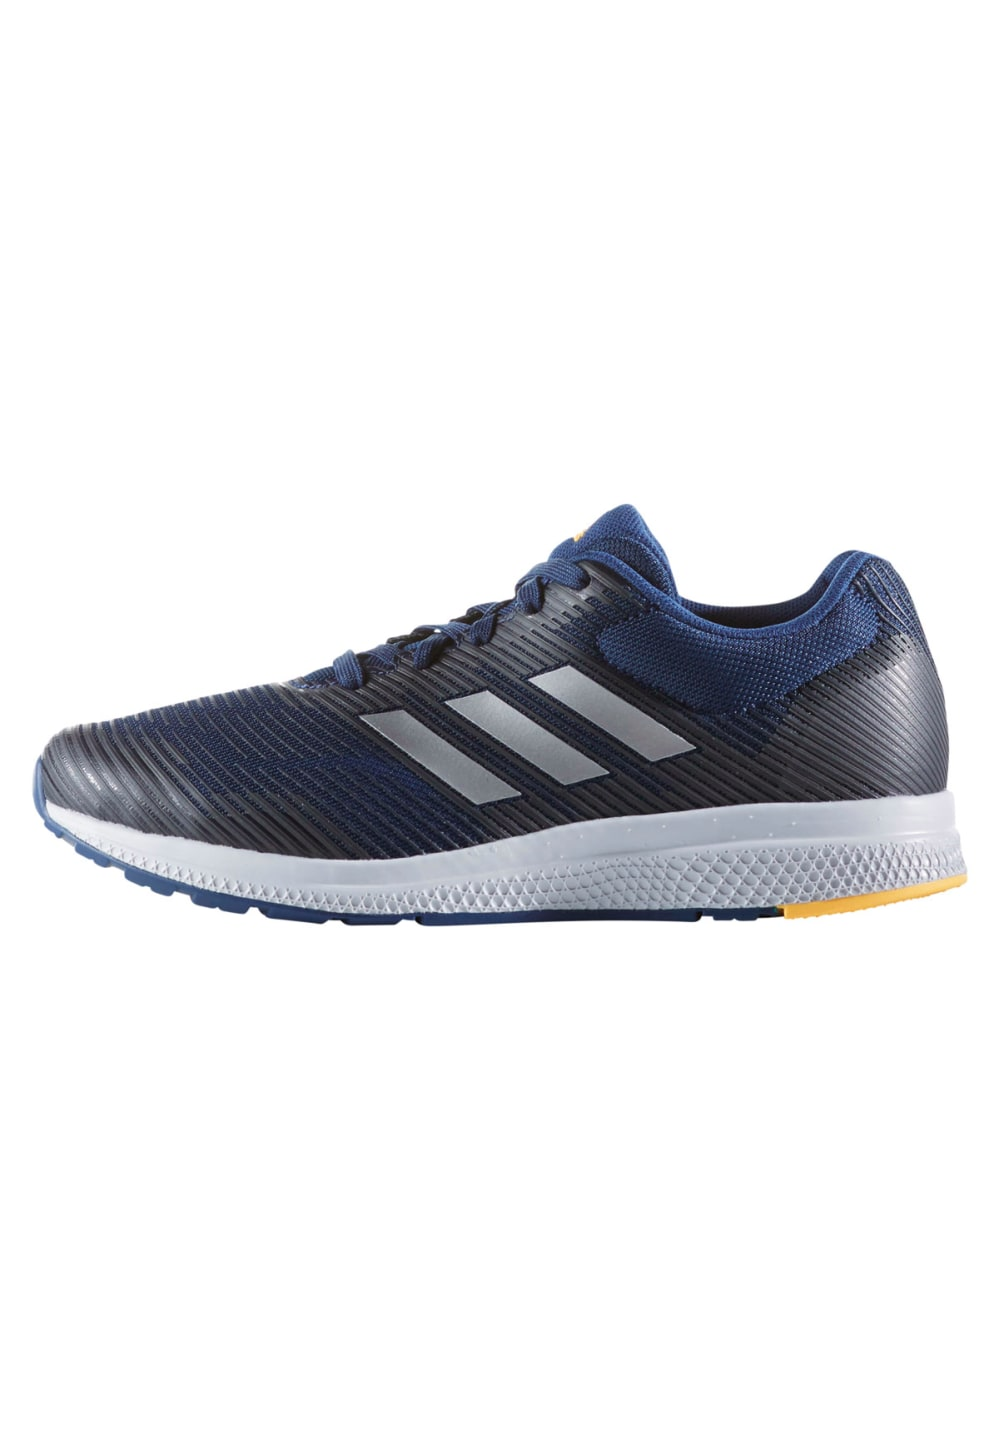 a8bad844fd35c ... adidas Mana Bounce 2 J - Running shoes - Black. Back to Overview. 1  2   3  4  5. Previous. Next